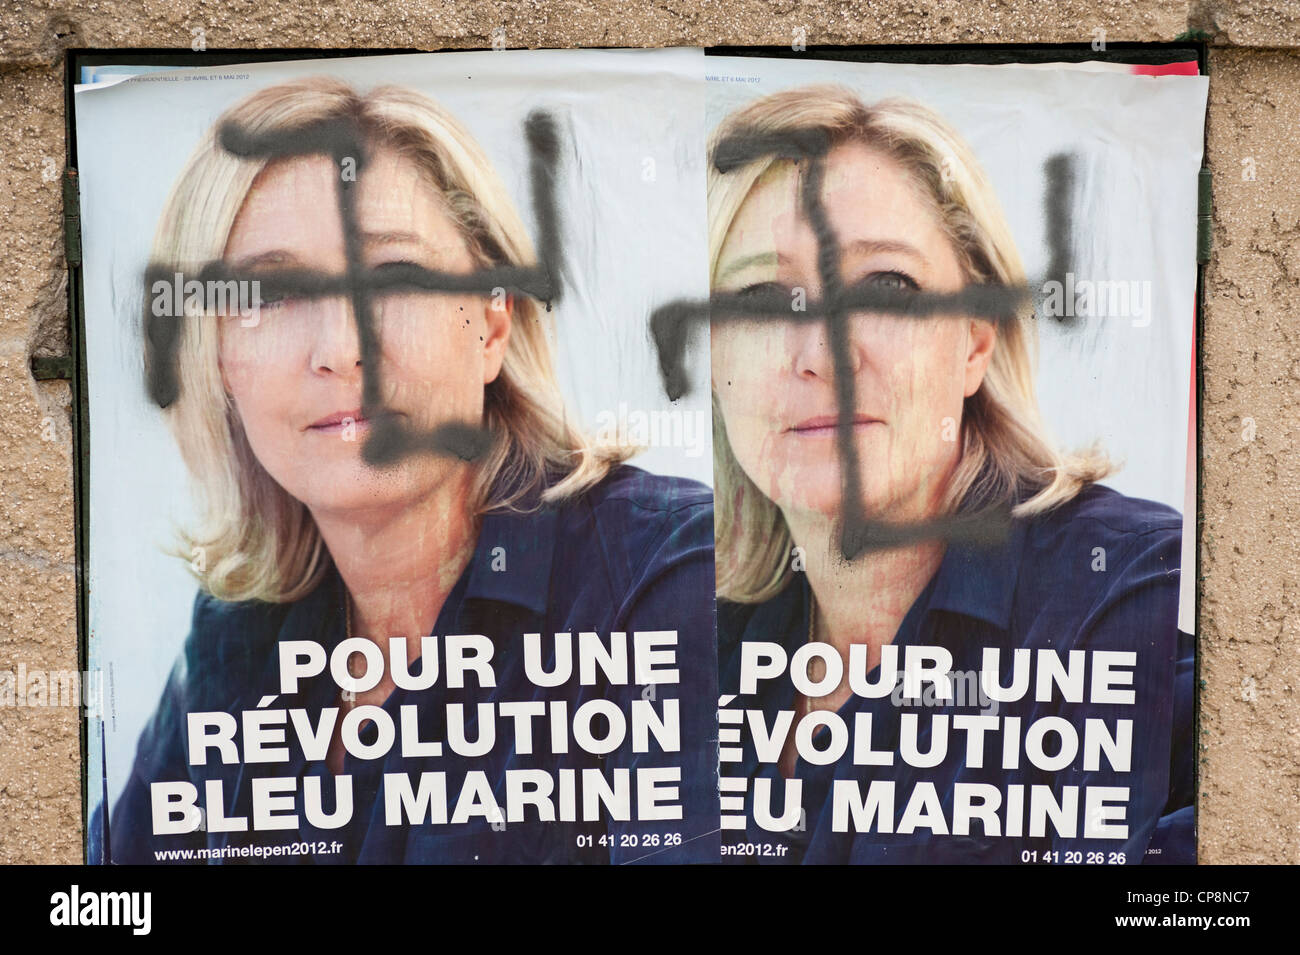 Swastika painted over posters of Marine Le Pen, France's far-right National Front political party leader - French Stock Photo